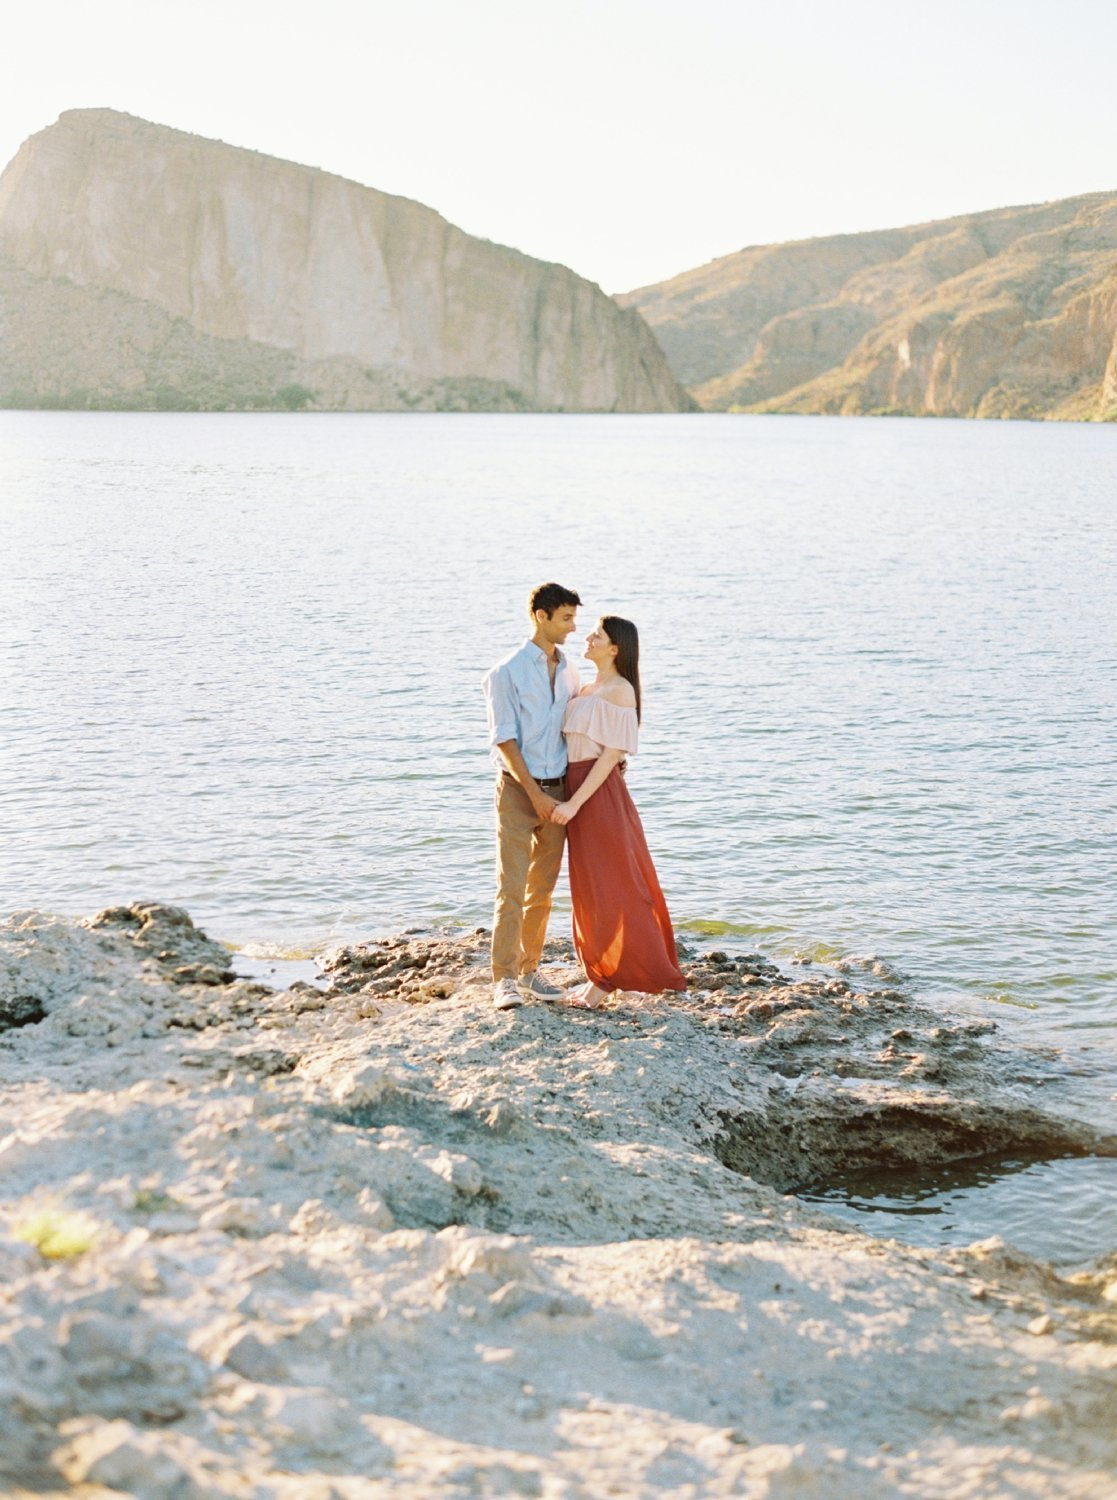 lake-arizona-engagement-session-wedding-photographer-Rachael-Koscica_0559